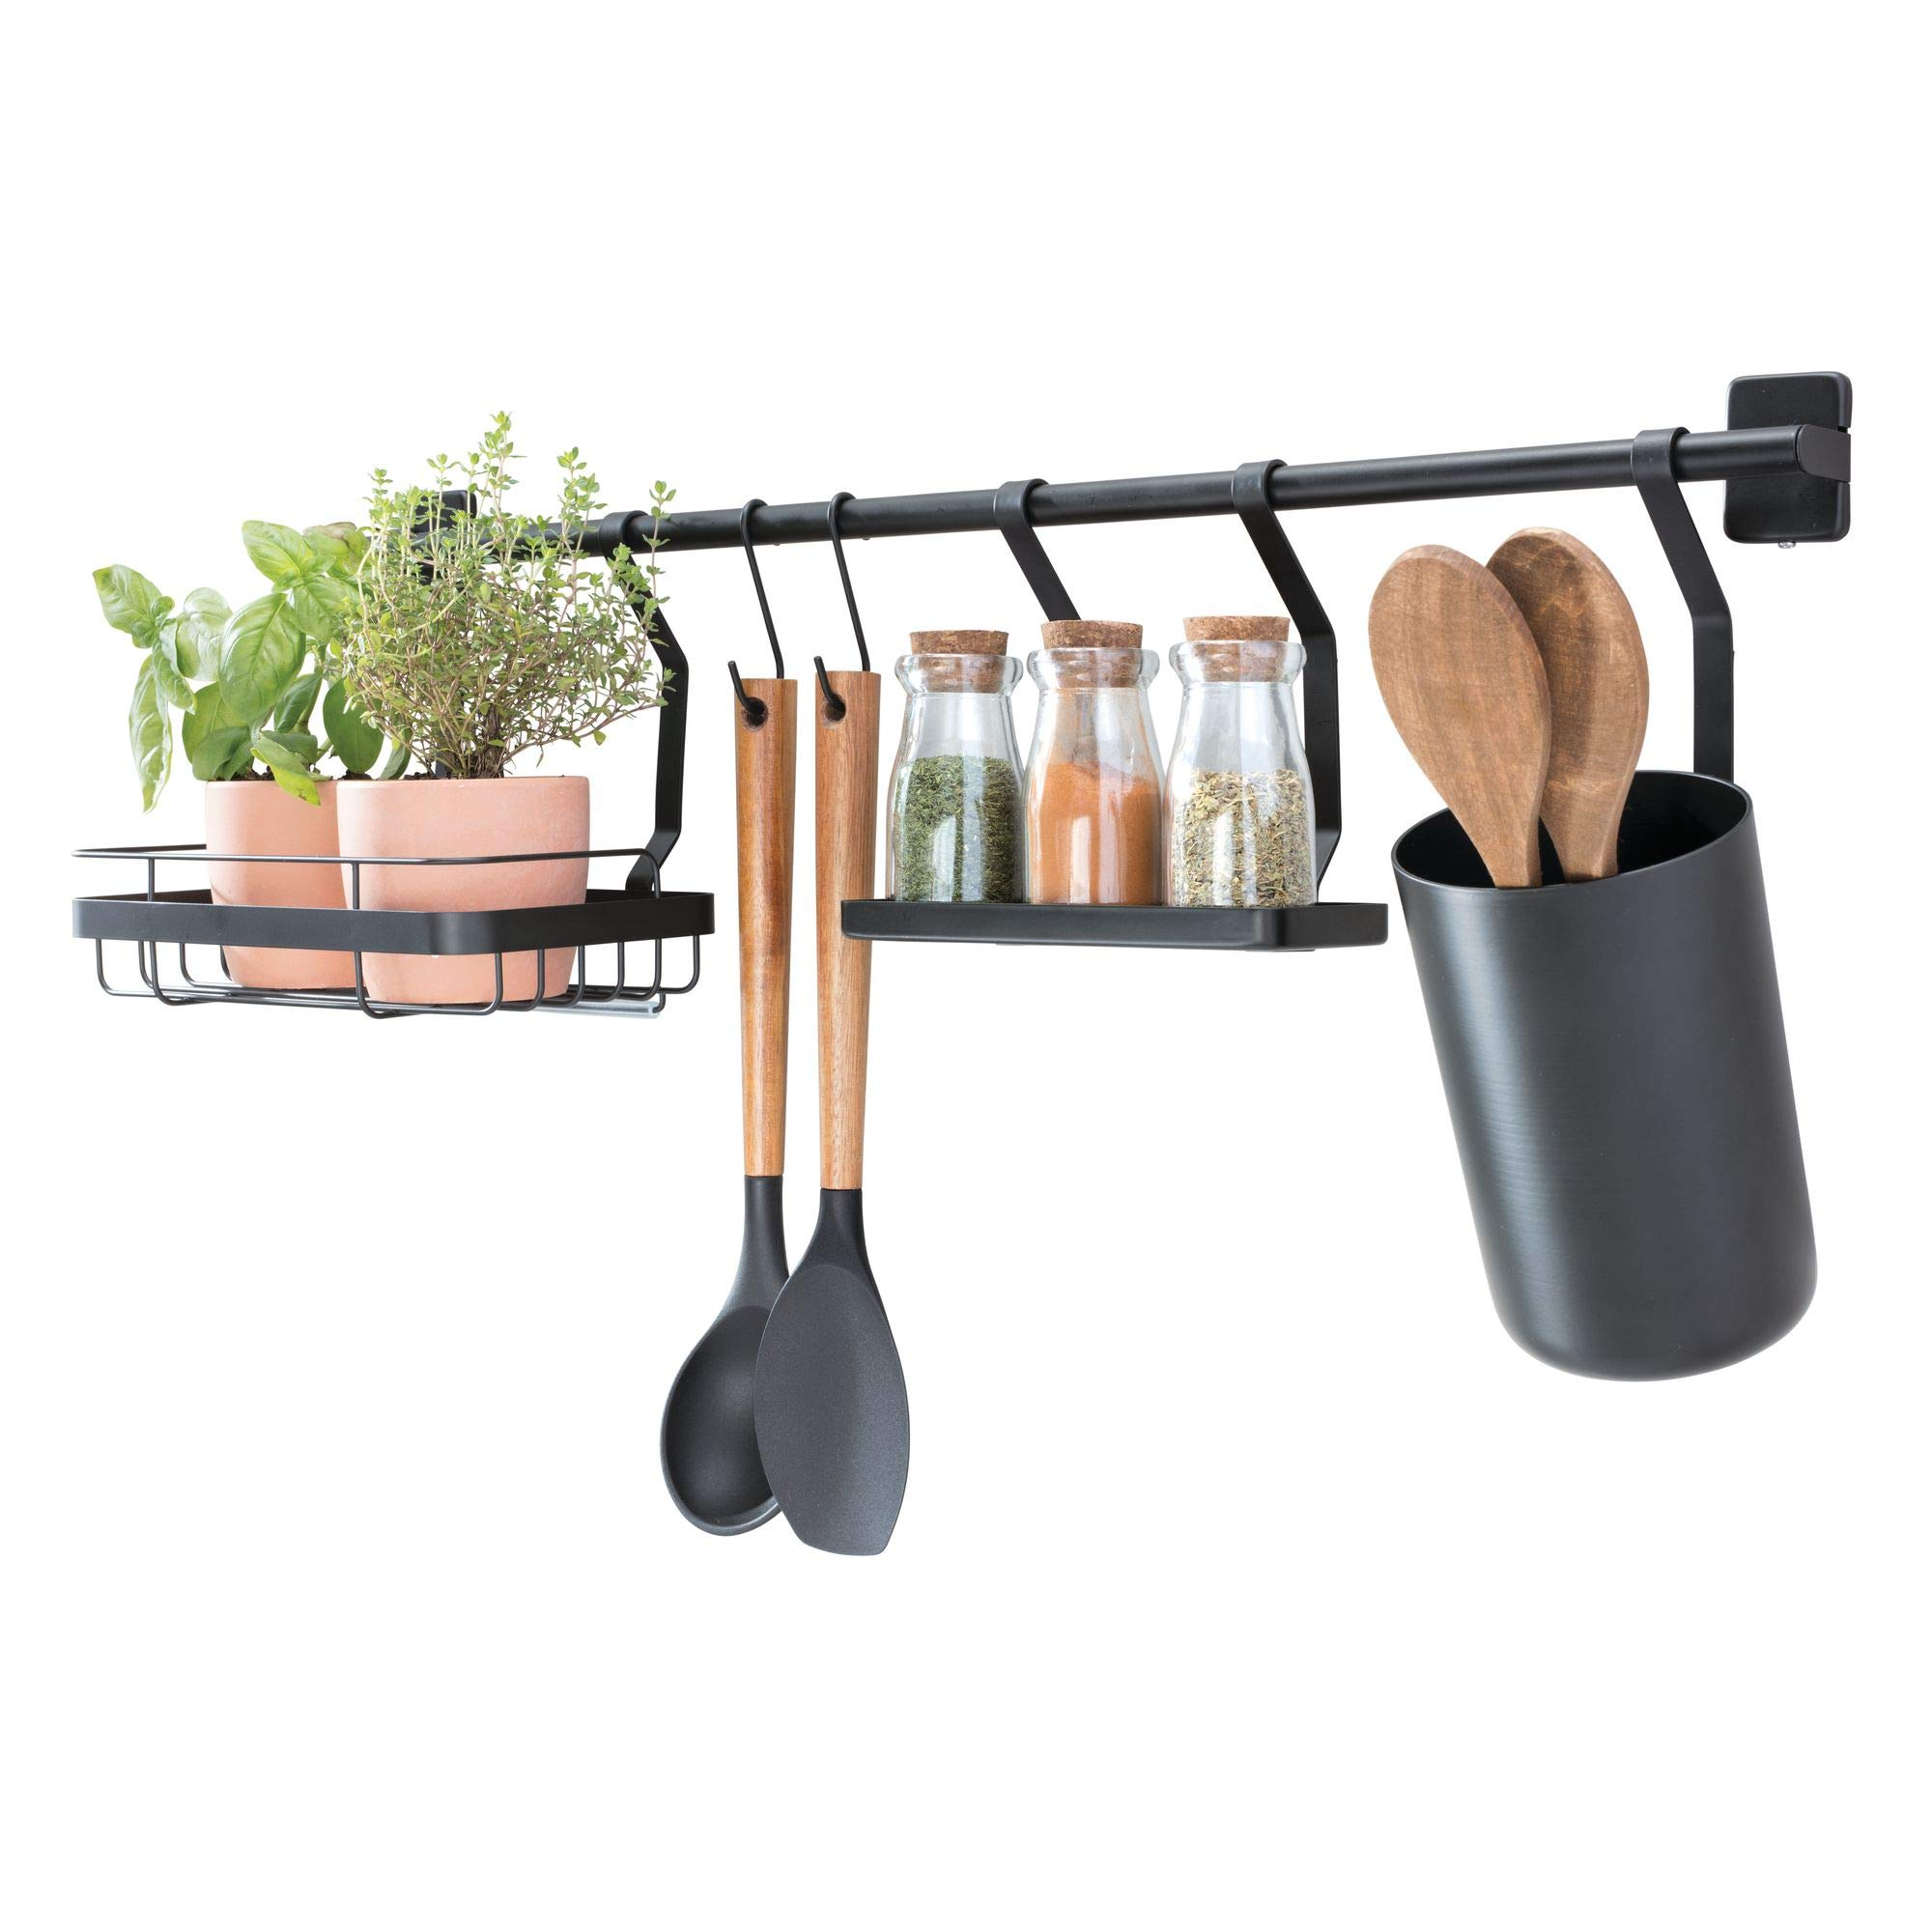 iDesign Austin Kitchen Wall Organizer, Holds Spices, Utensils, and More - Matte Black by iDesign